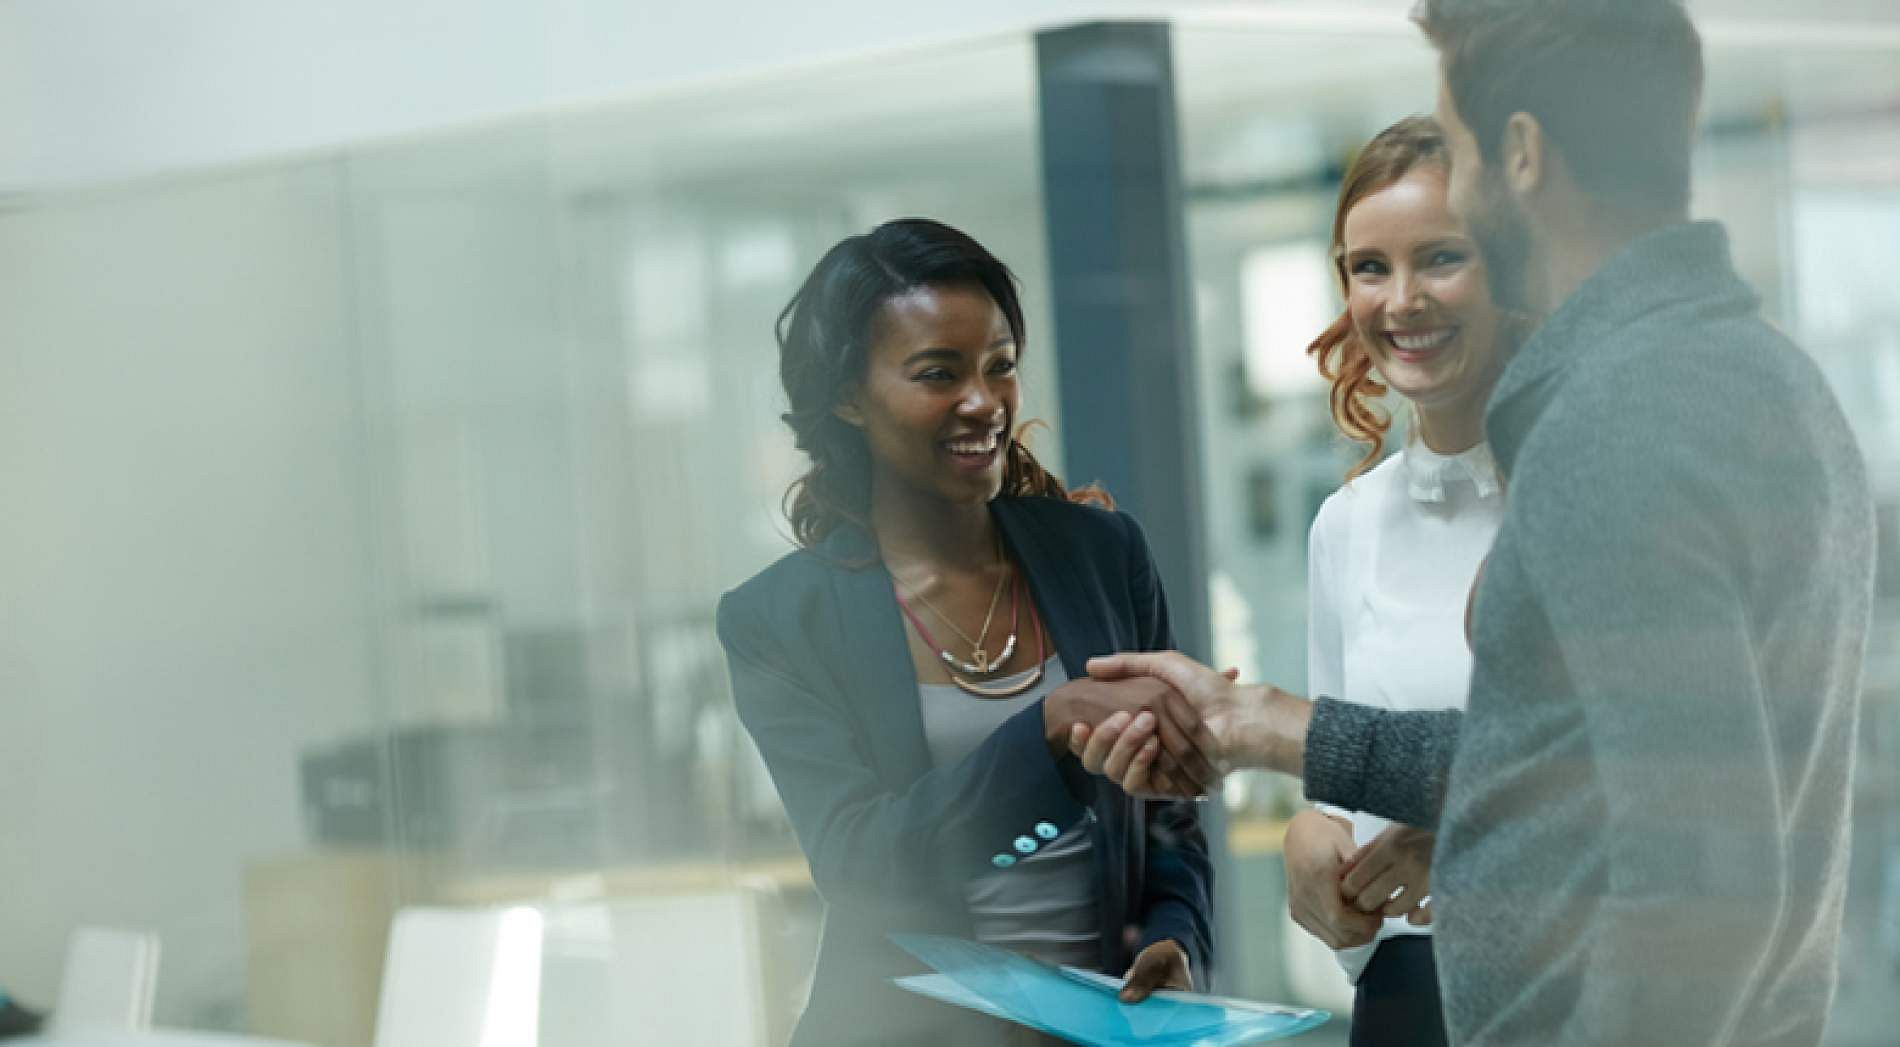 Creating Strong and Diverse Organizations